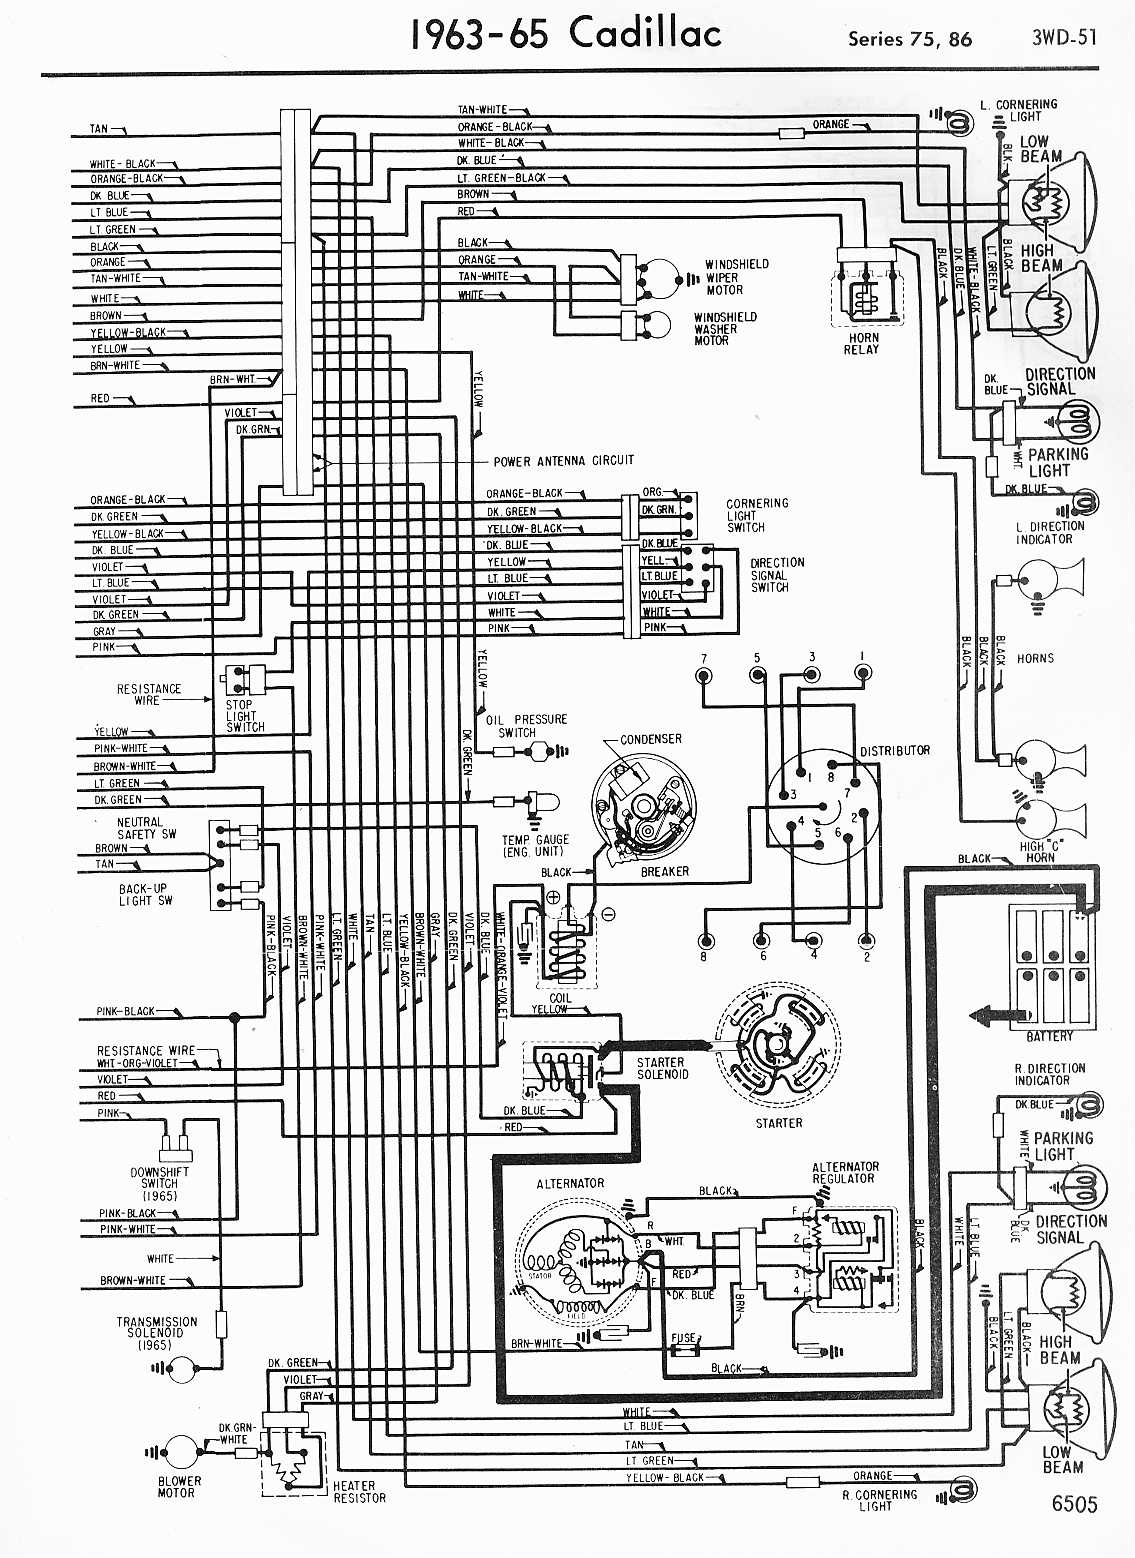 MWireCadi65_3WD 051 1999 cadillac deville starter wiring wiring diagram simonand 1996 Fleetwood Bounder Interior at crackthecode.co